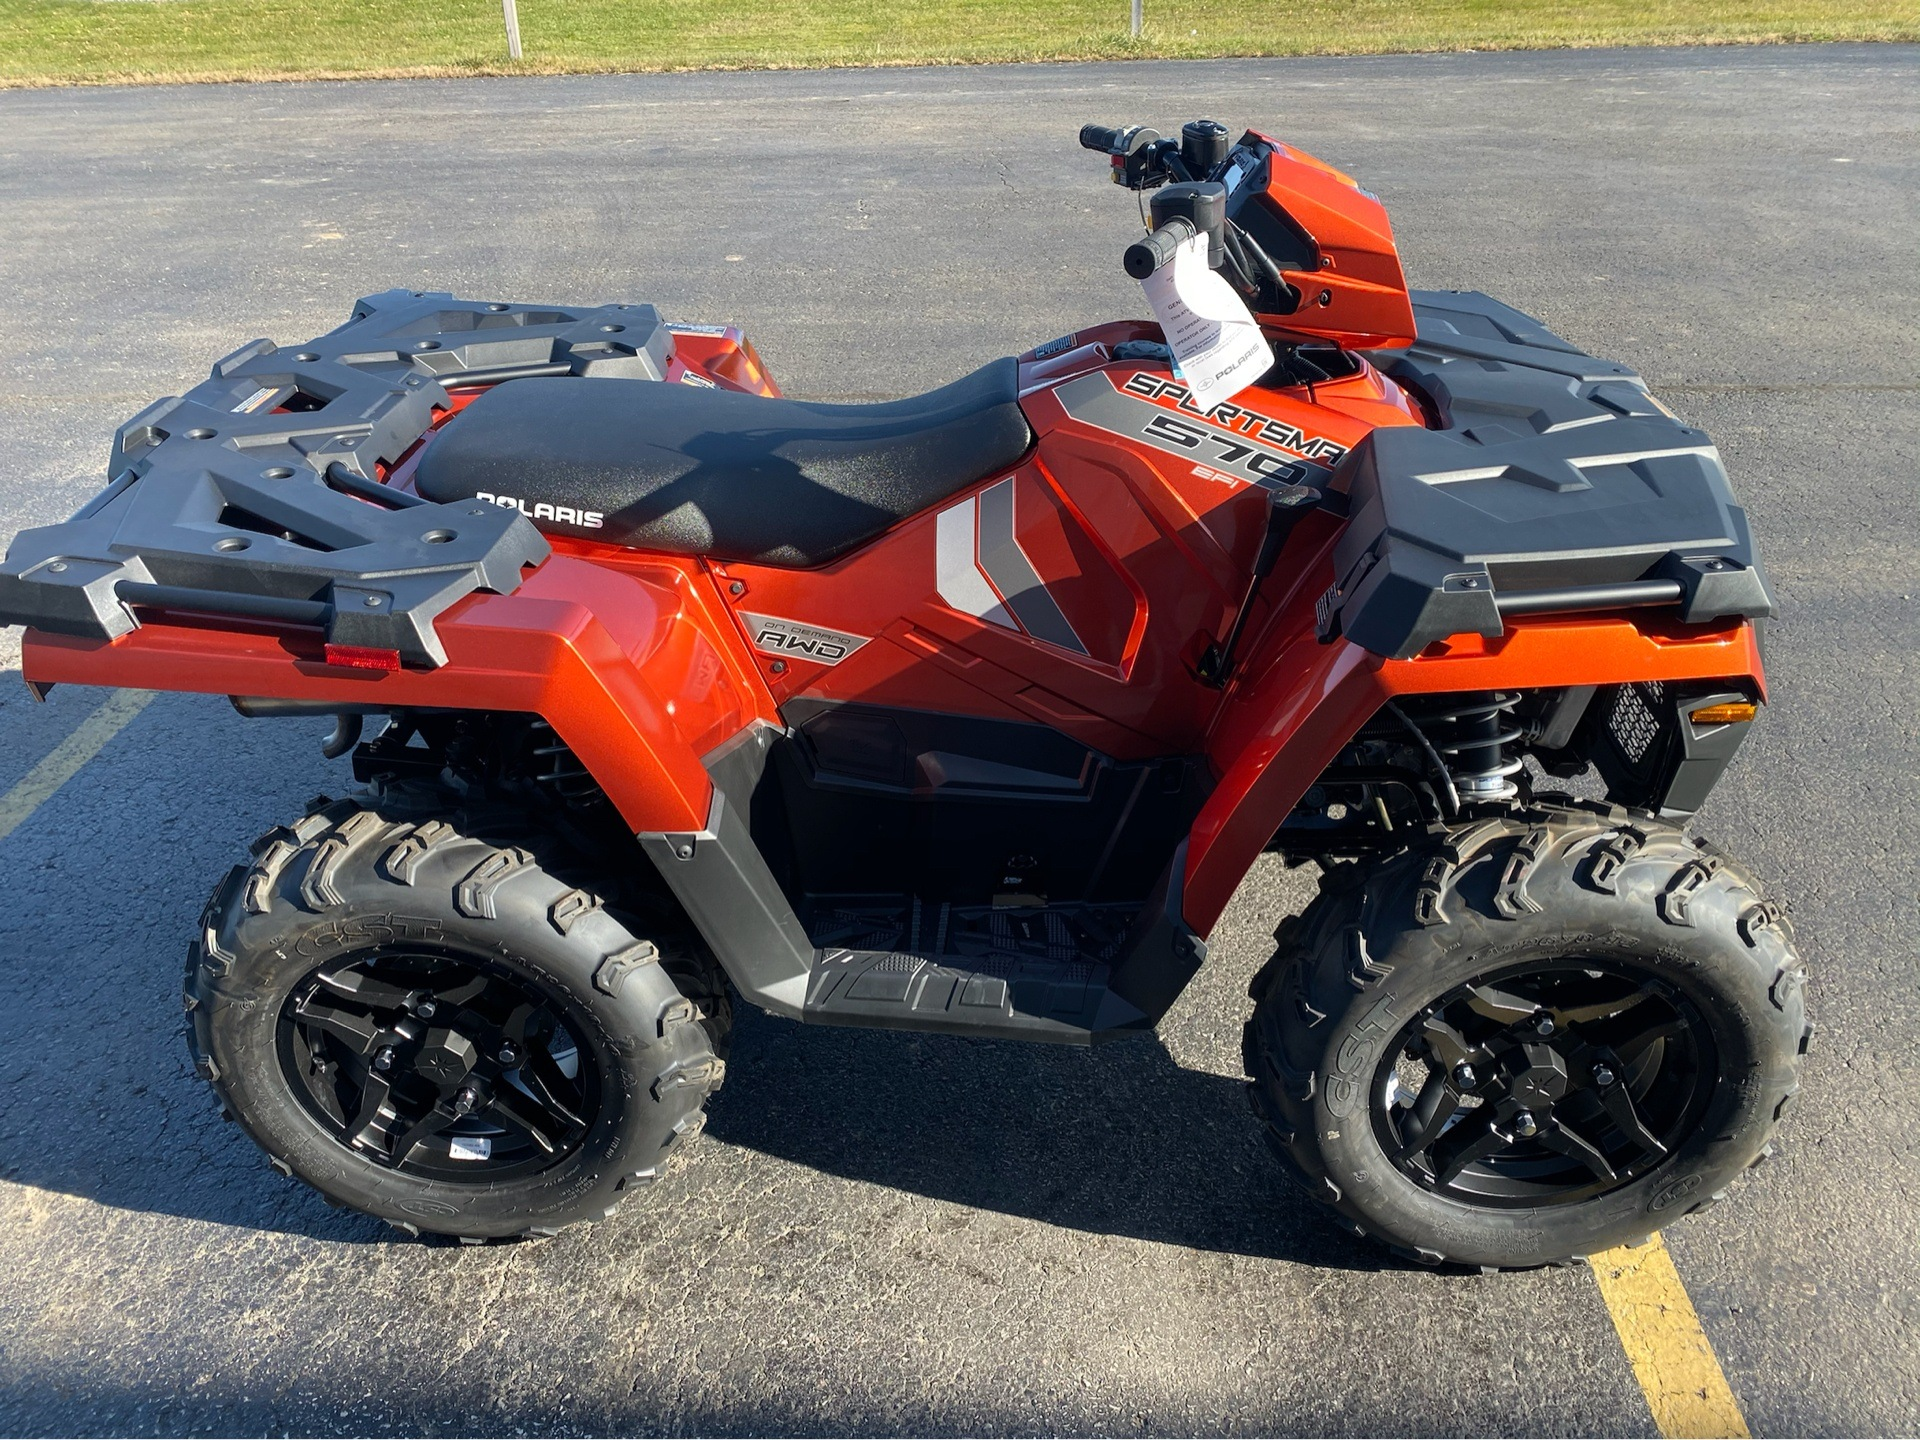 2020 Polaris Sportsman 570 Premium in Appleton, Wisconsin - Photo 2